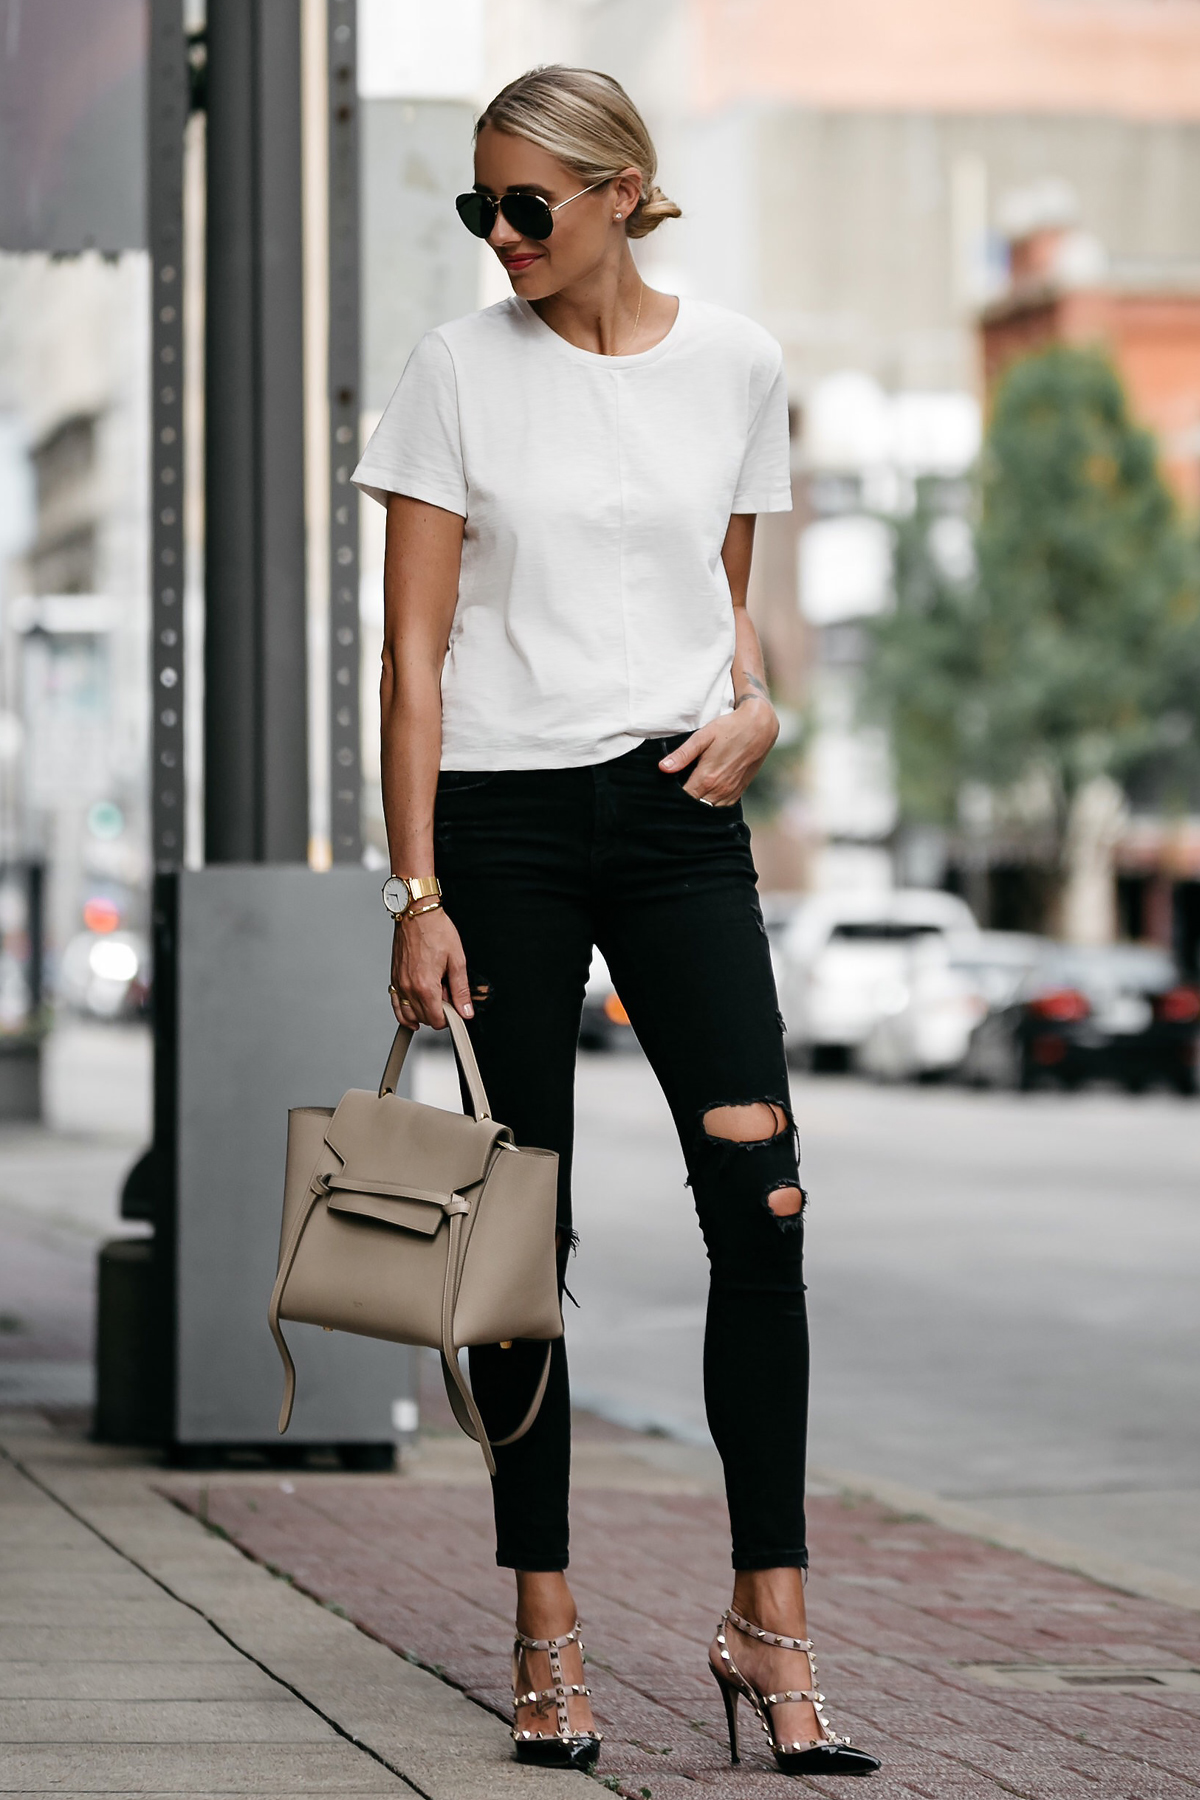 Blonde woman wearing everlane white tshirt zara black ripped skinny jeans outfit valentinio rockstud pumps celine belt back street style dallas blogger fashion blogger